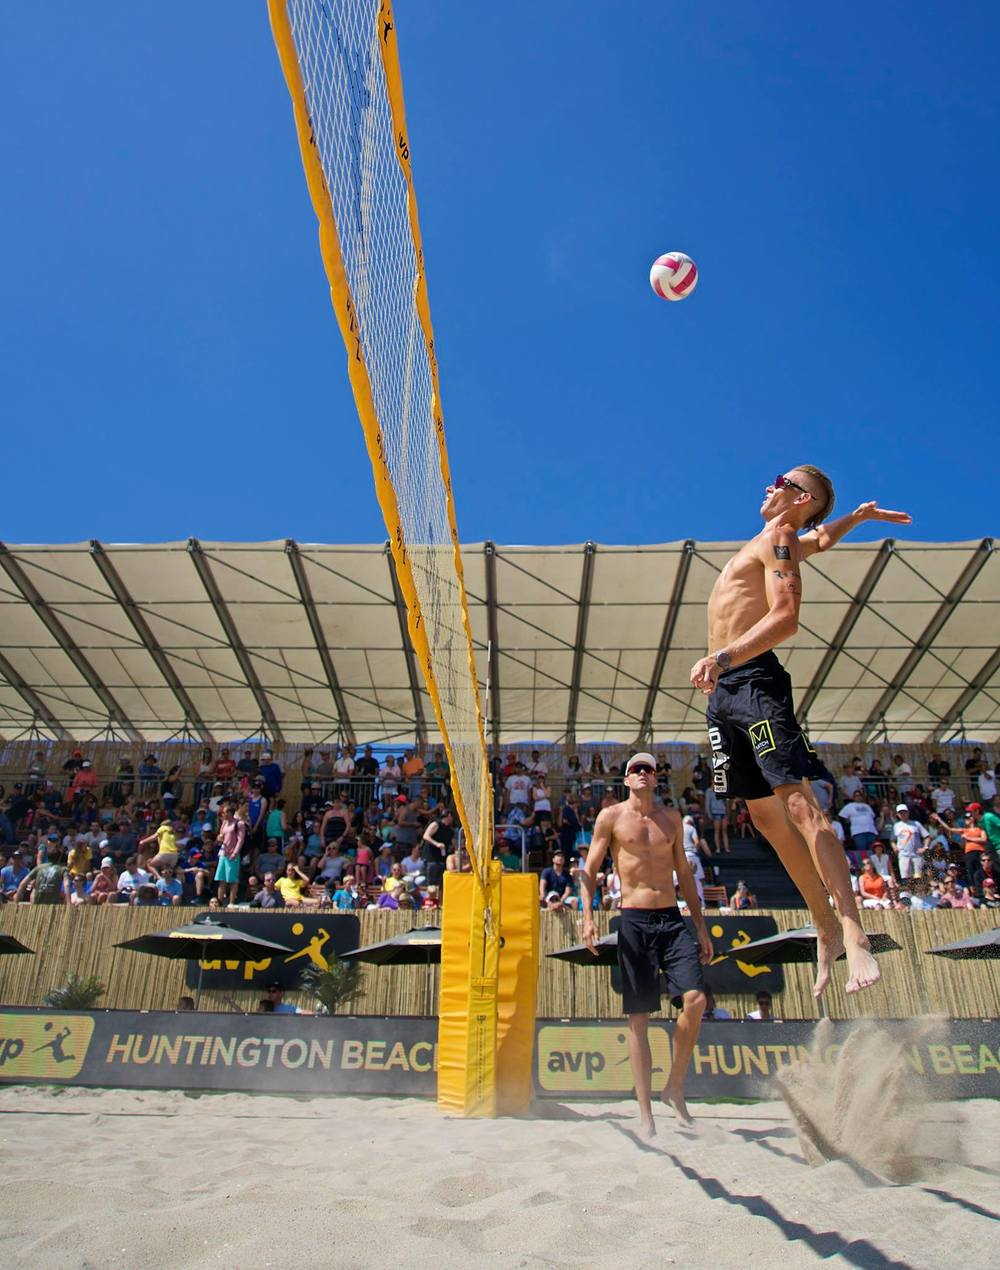 casey Huntington Beach avp 2016.jpg